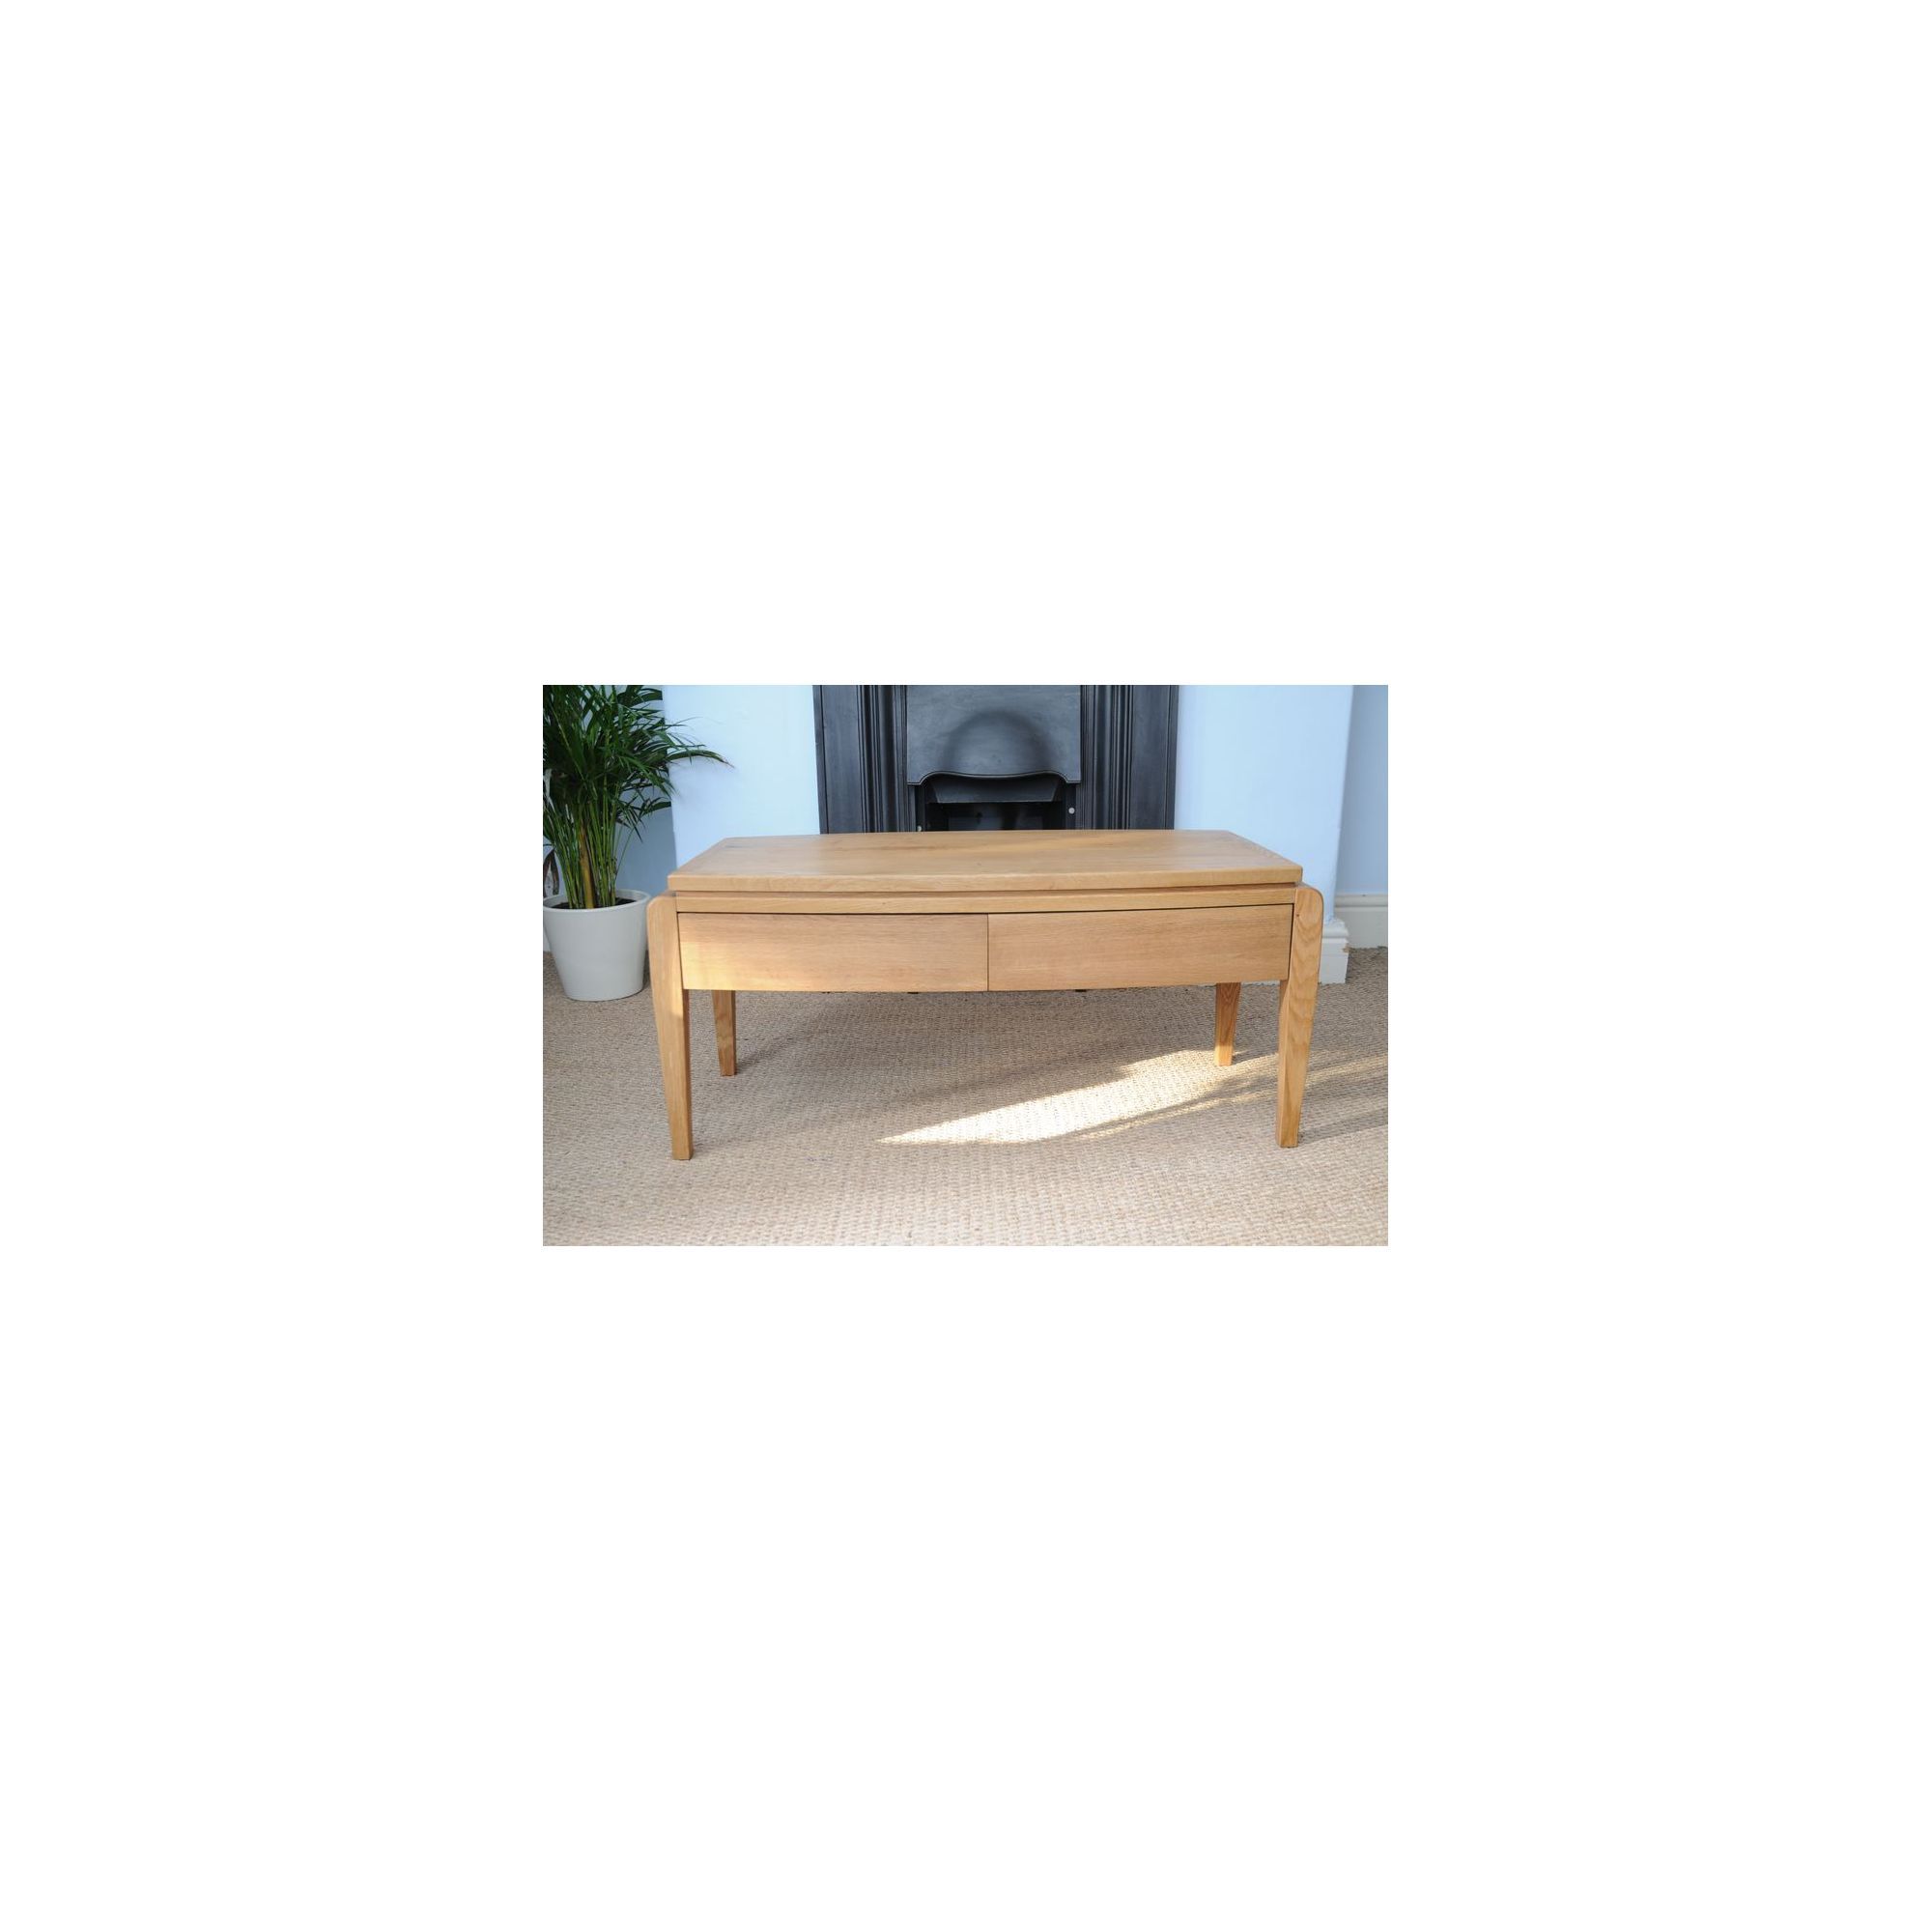 Oceans Apart Belvedere Oak Coffee Table at Tesco Direct